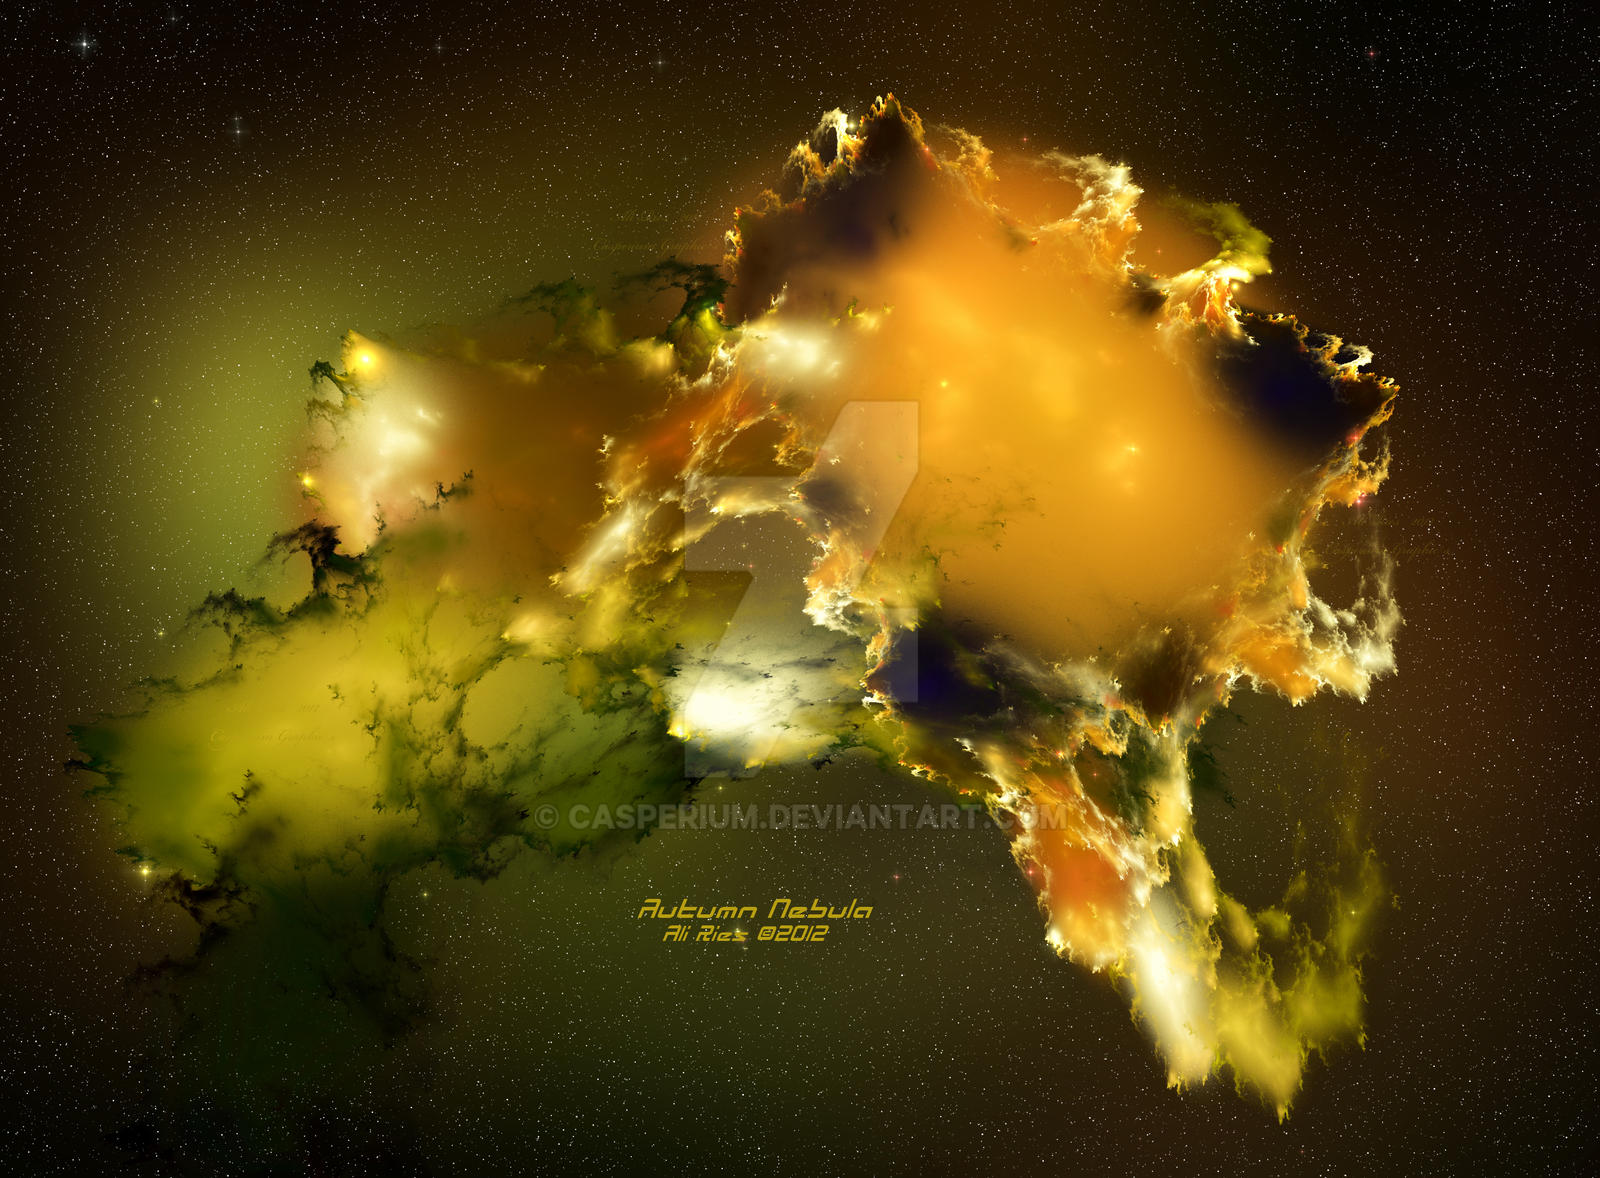 Autumn Nebula by Casperium